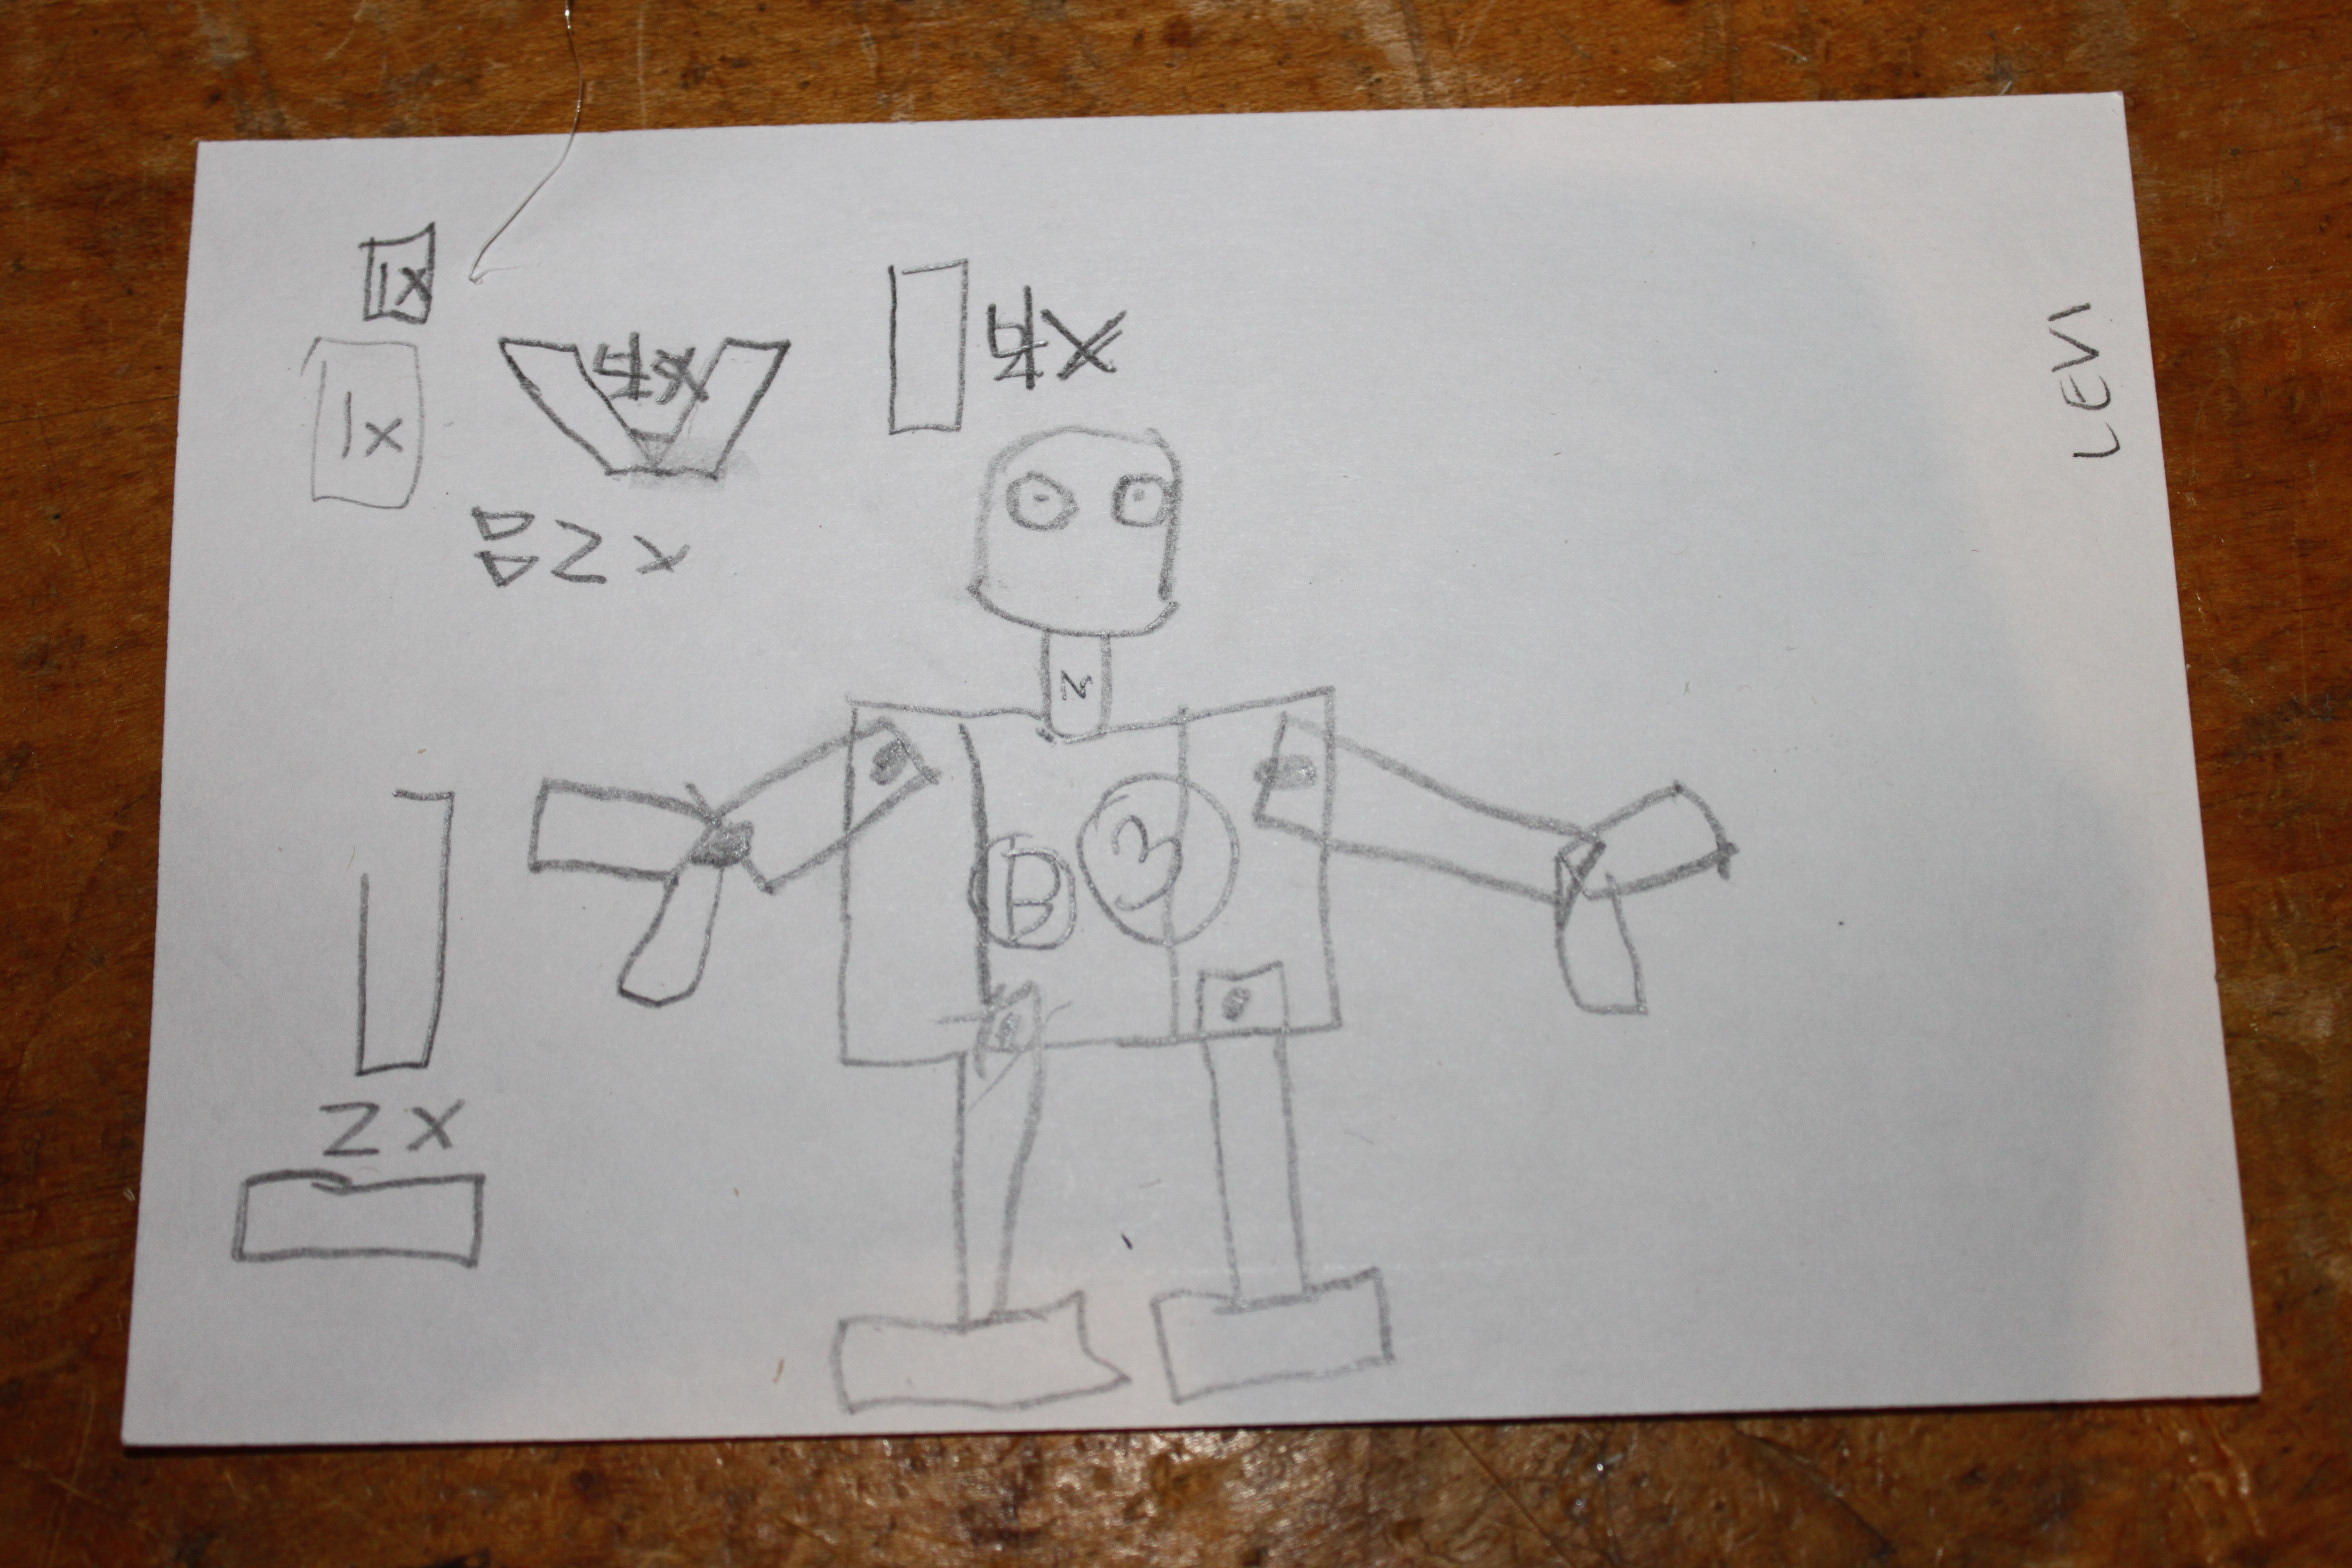 Makeshop robot fabrication while designing his robot levi was reminded of lego building kits and games in the world of toy building bricks projects are broken down into component malvernweather Gallery